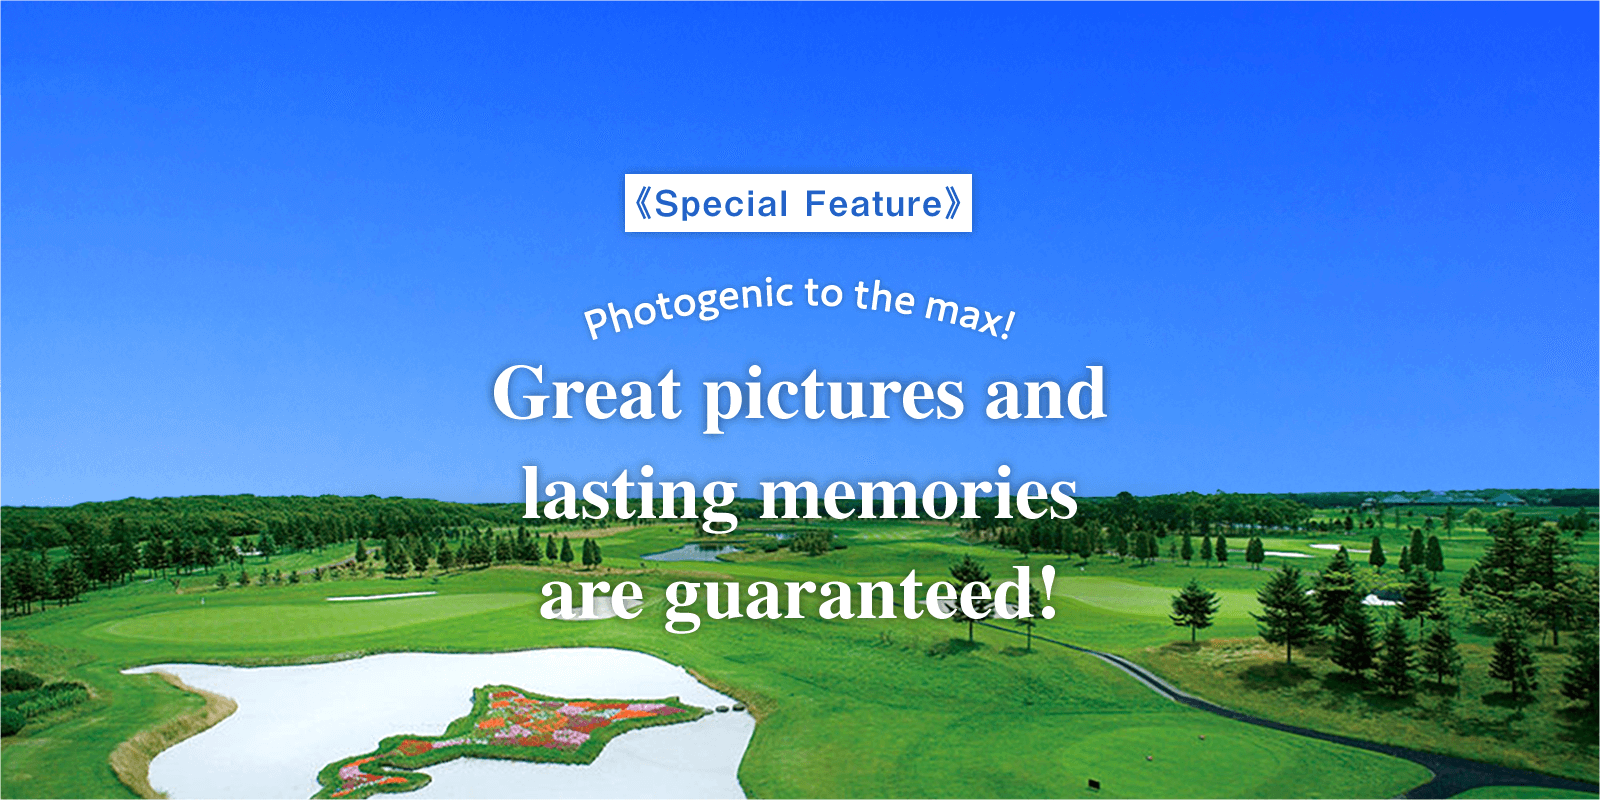 【Resort Golf Courses in Hokkaido】Photogenic to the max!  Great pictures and lasting memories are guaranteed!